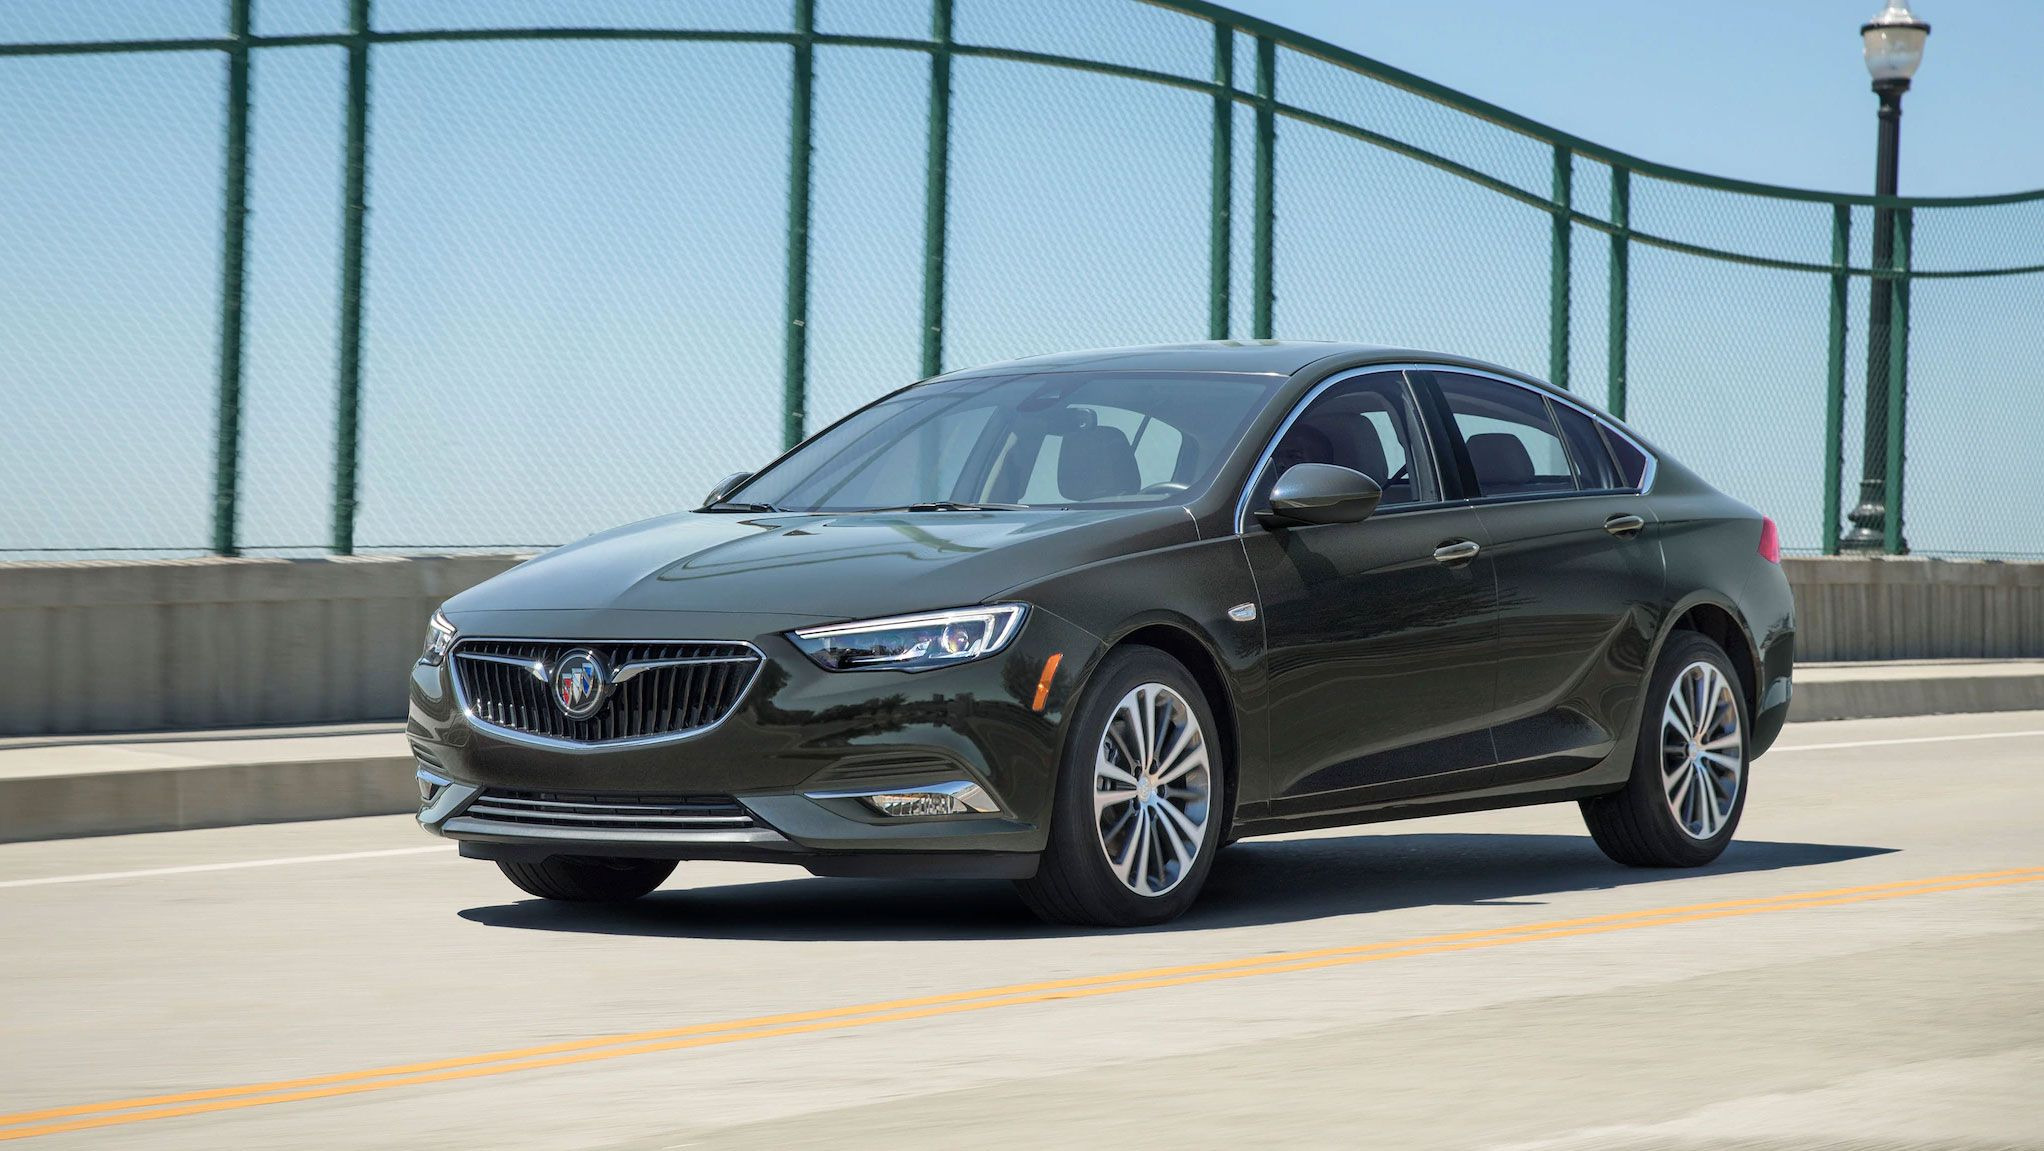 2020 Buick Regal Sportback Review, Pricing, And Specs New 2021 Buick Regal Sportback Engine, Preferred, Pics